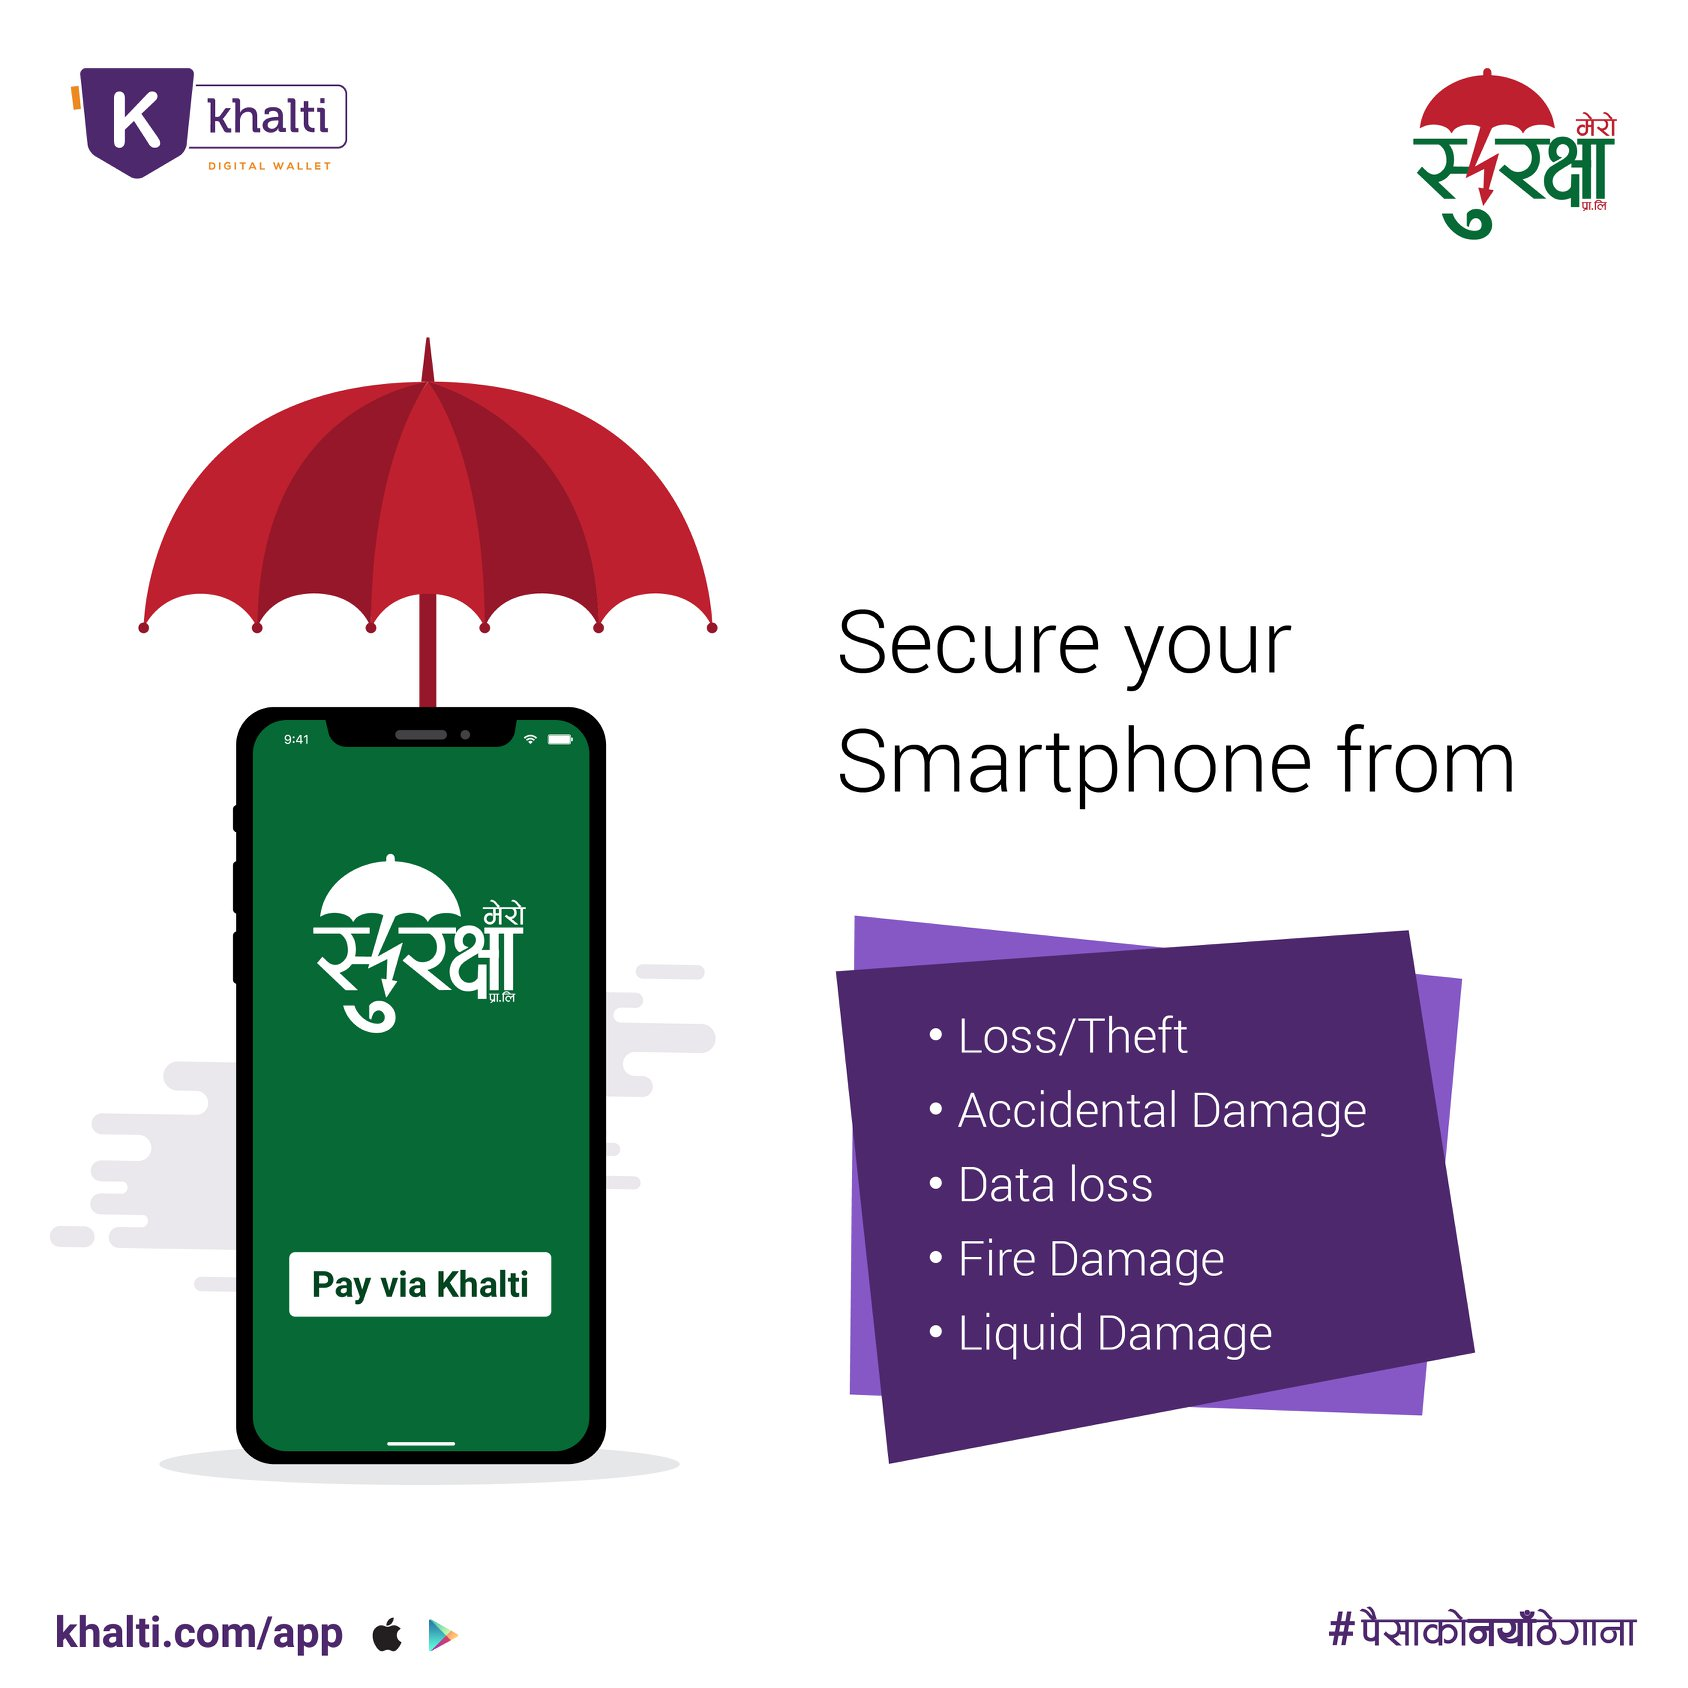 Mobile lost? No worries now as Mero Surakshya can come to your rescue